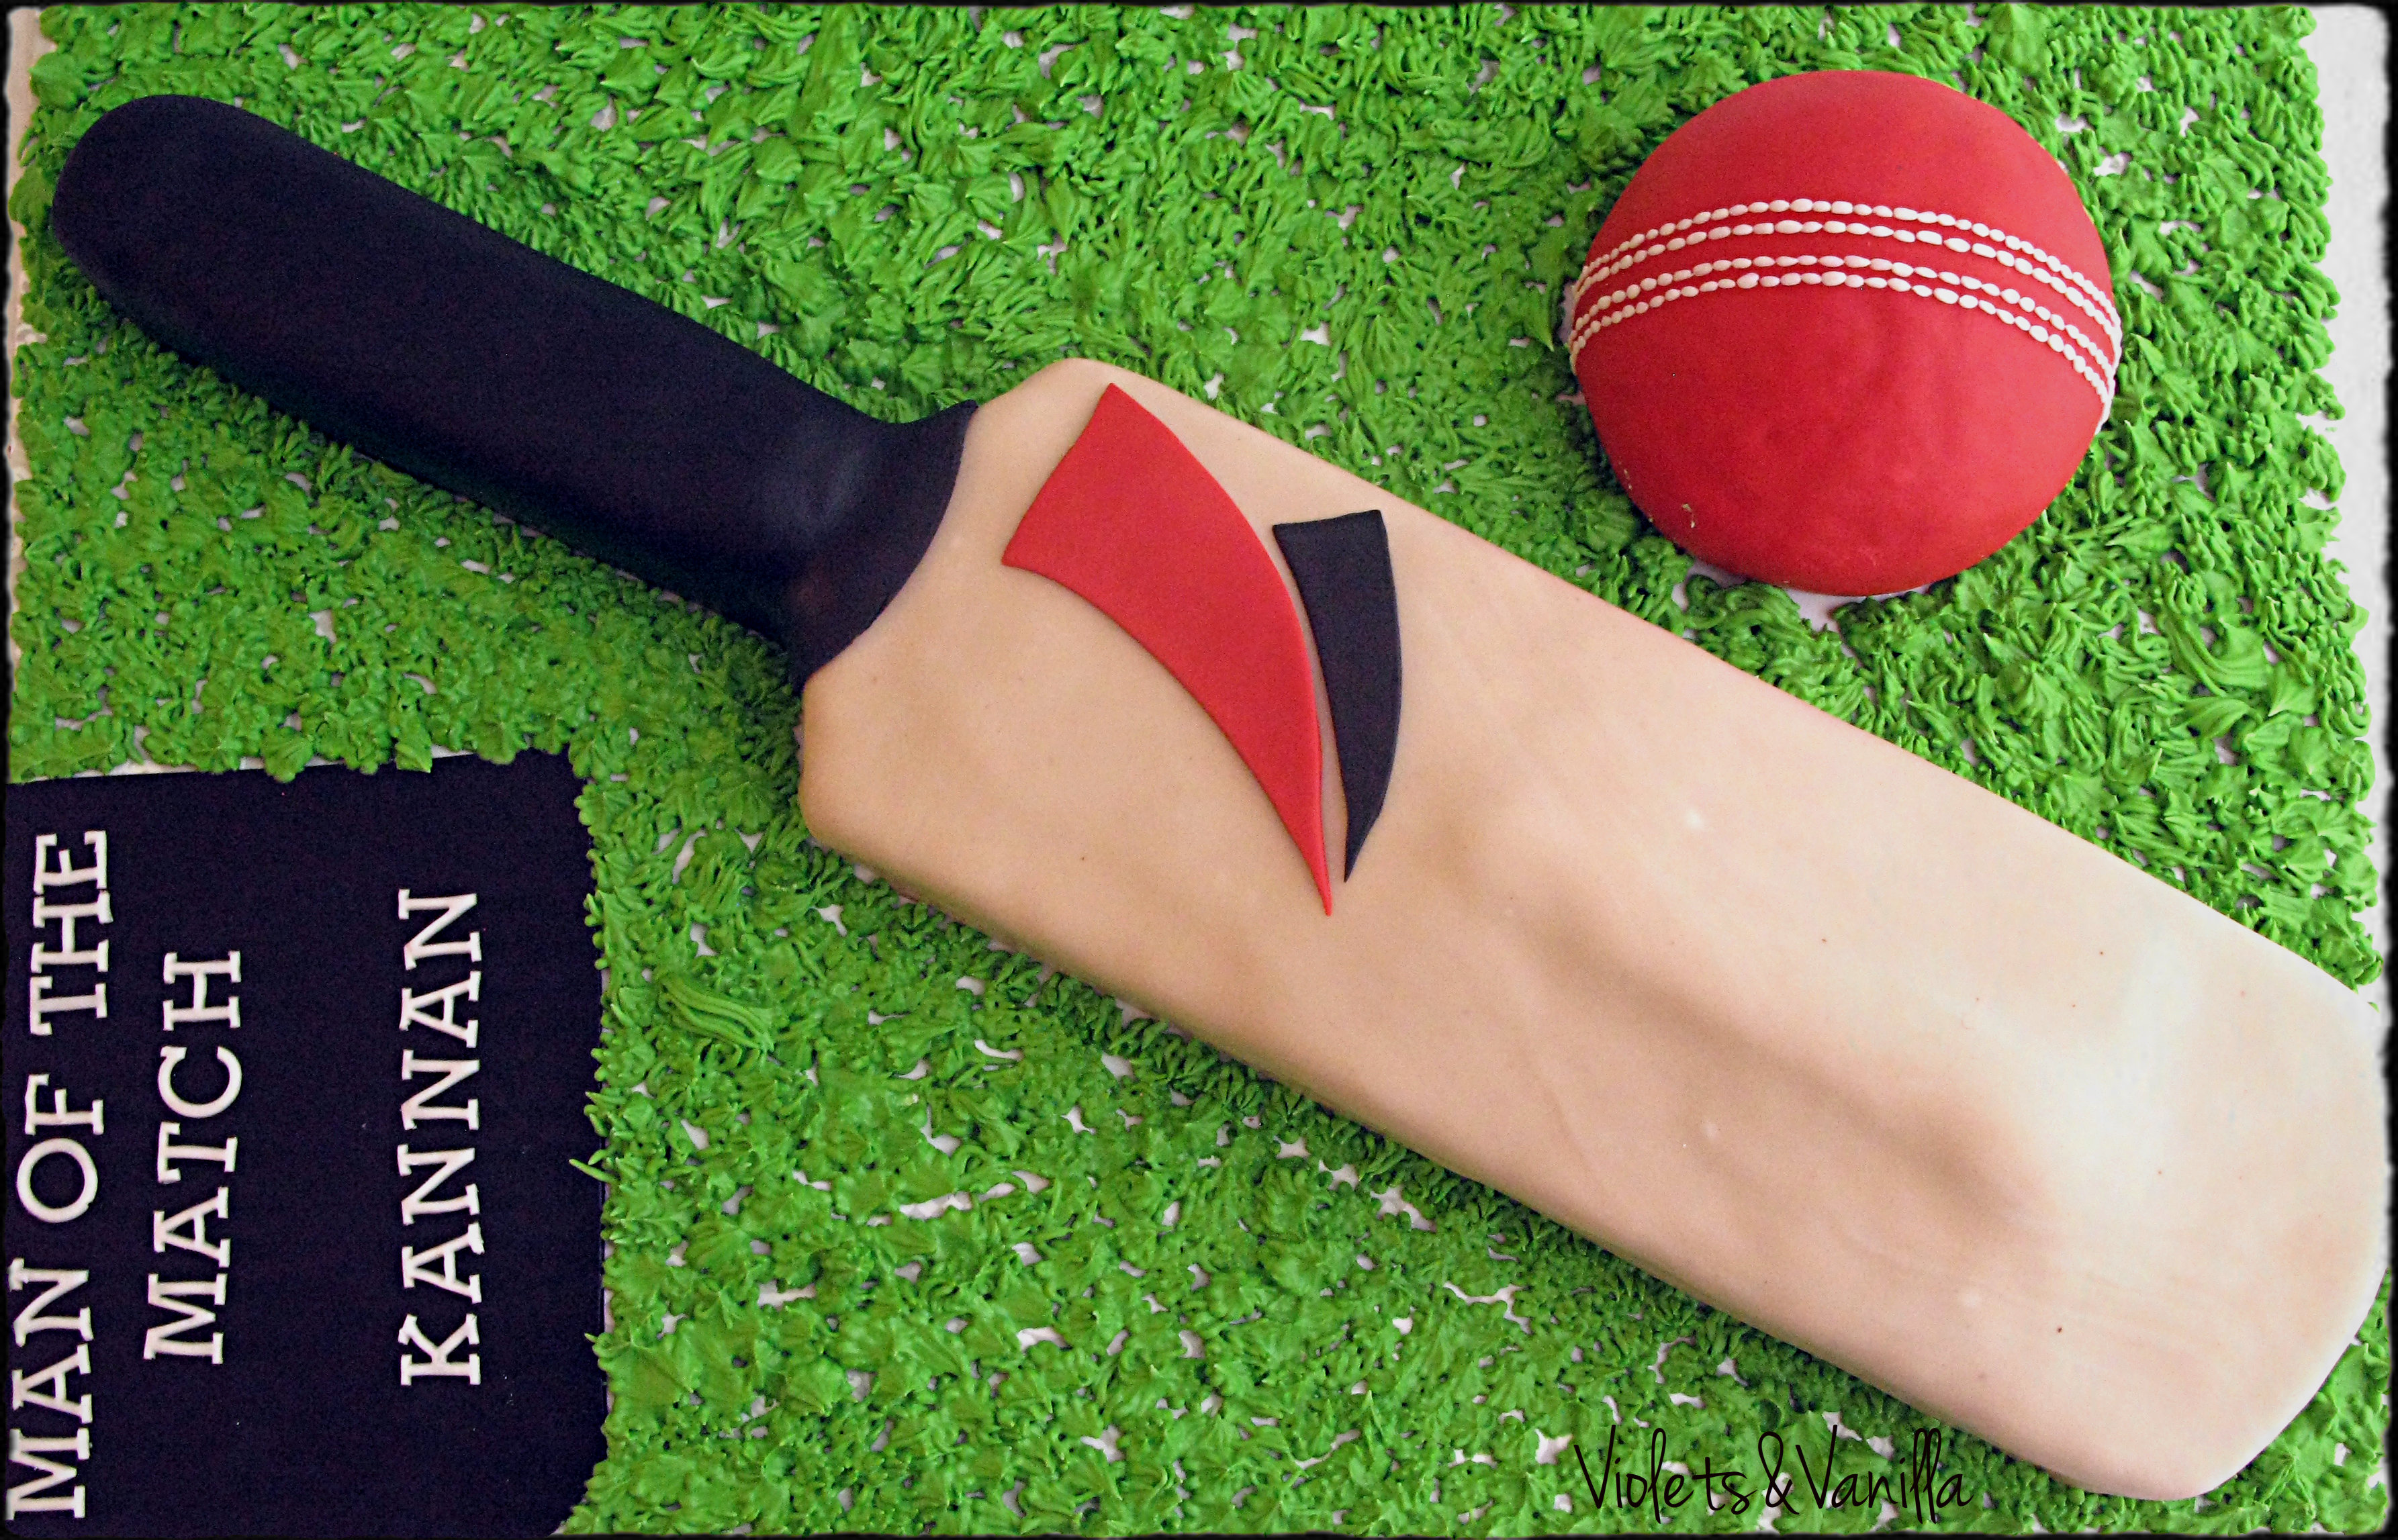 Cricket Bat Cake Images : Ball Violets & Vanilla